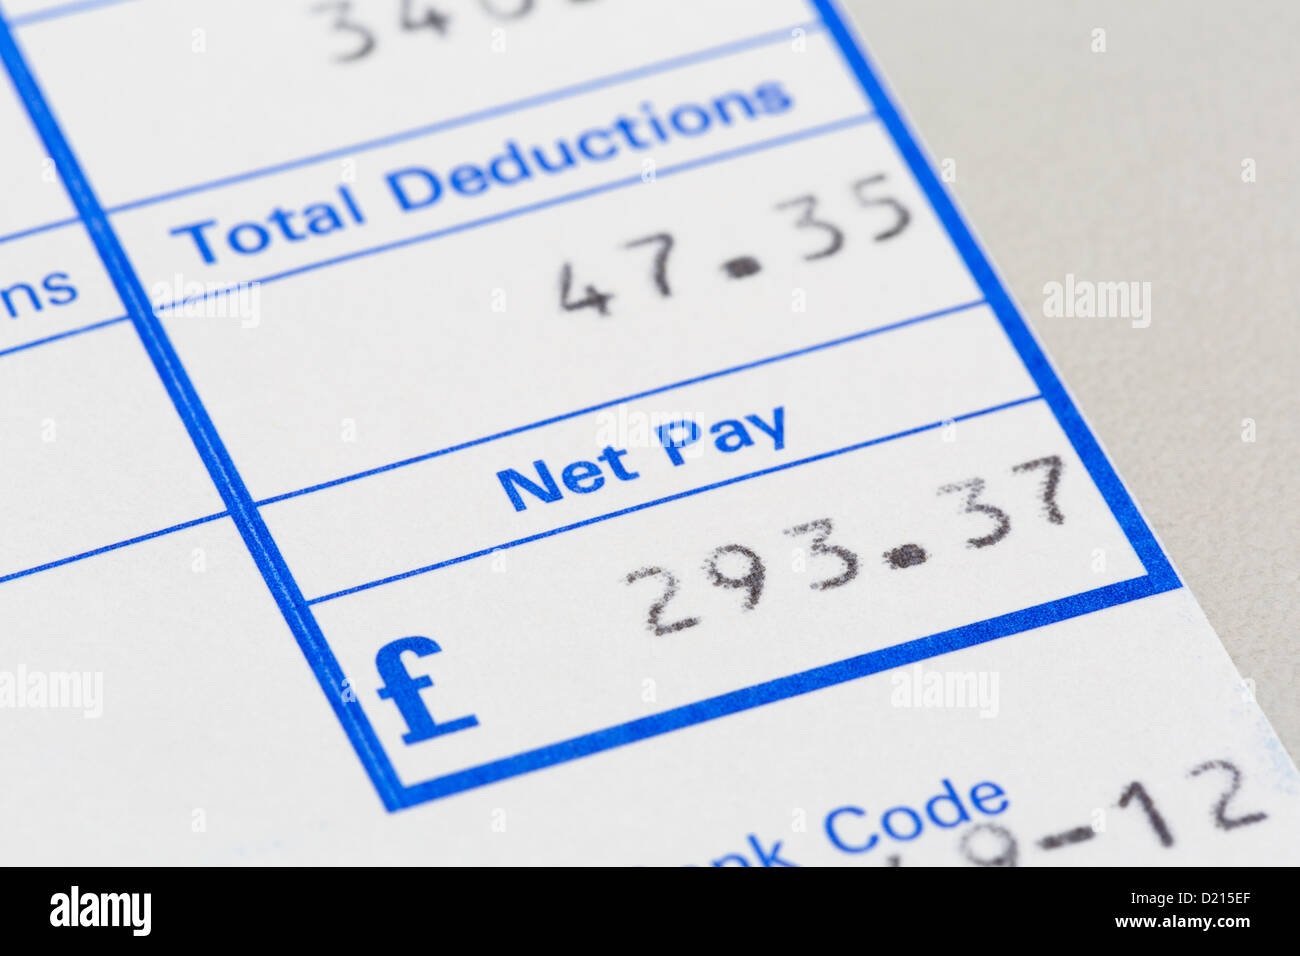 Monthly Pay Slip For A Low Paid Part Time Employee Showing A Small Amount  Of Net Pay In Pounds Sterling After Total Deductions  Monthly Pay Slip